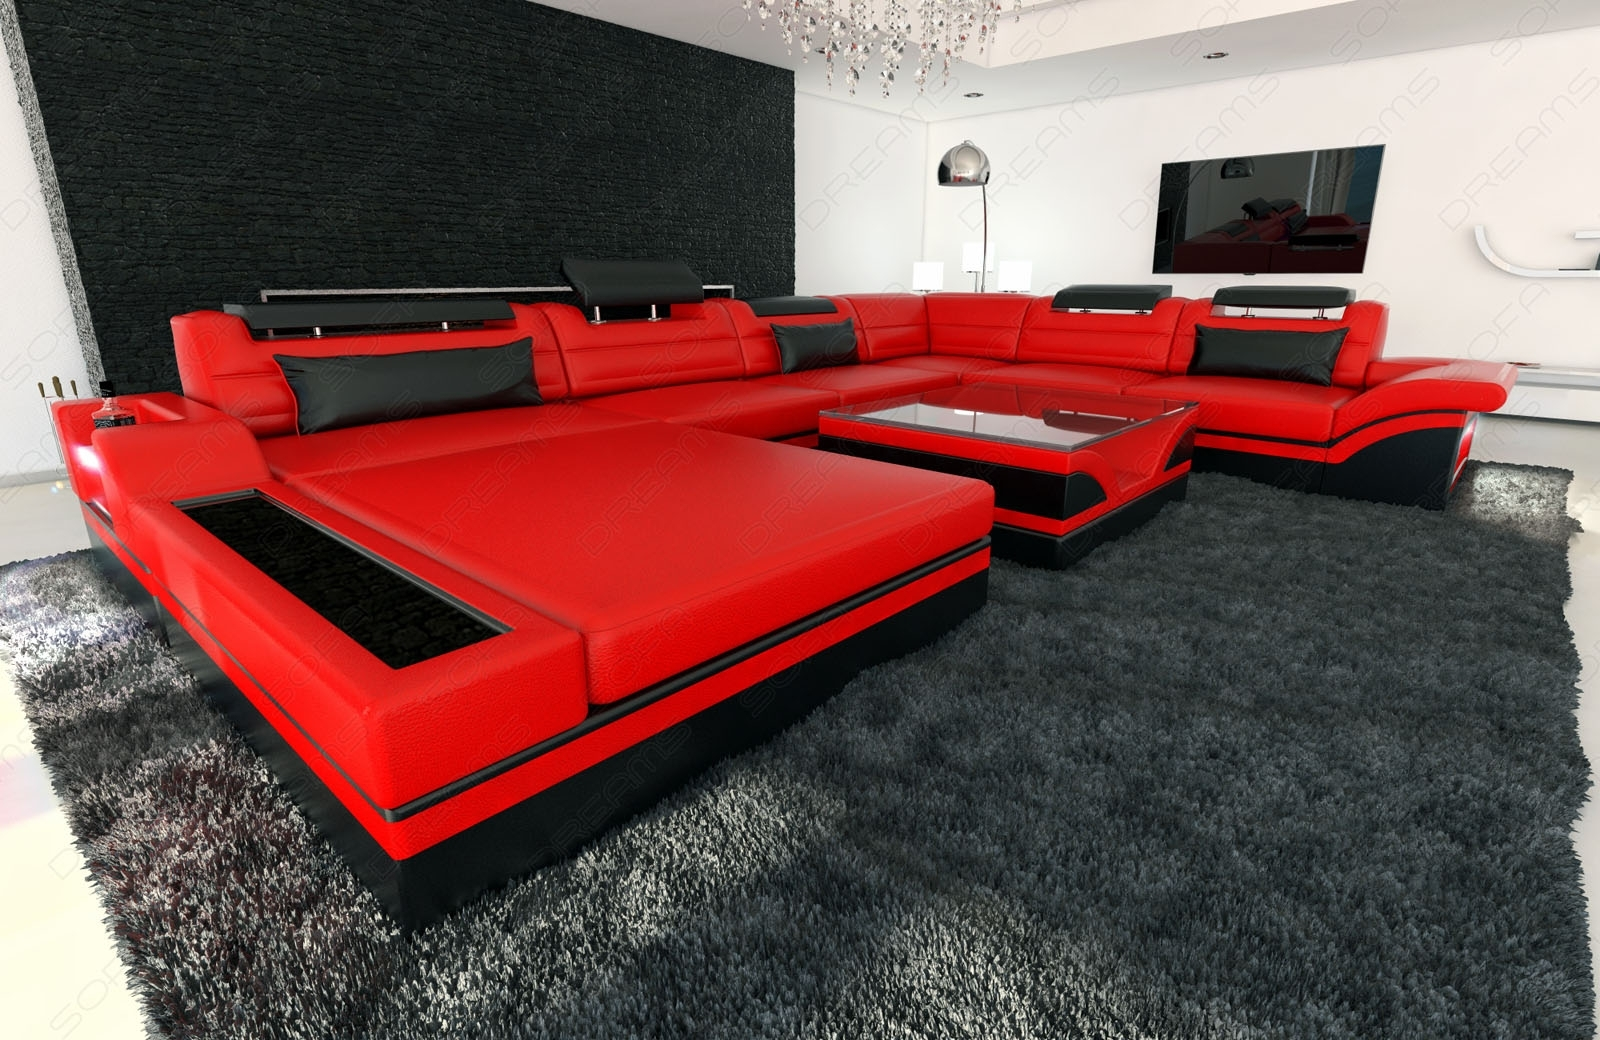 Design Sectional Sofa Mezzo Xxl With Led Lights Red Black | Ebay Intended For Red And Black Sofas (View 10 of 10)